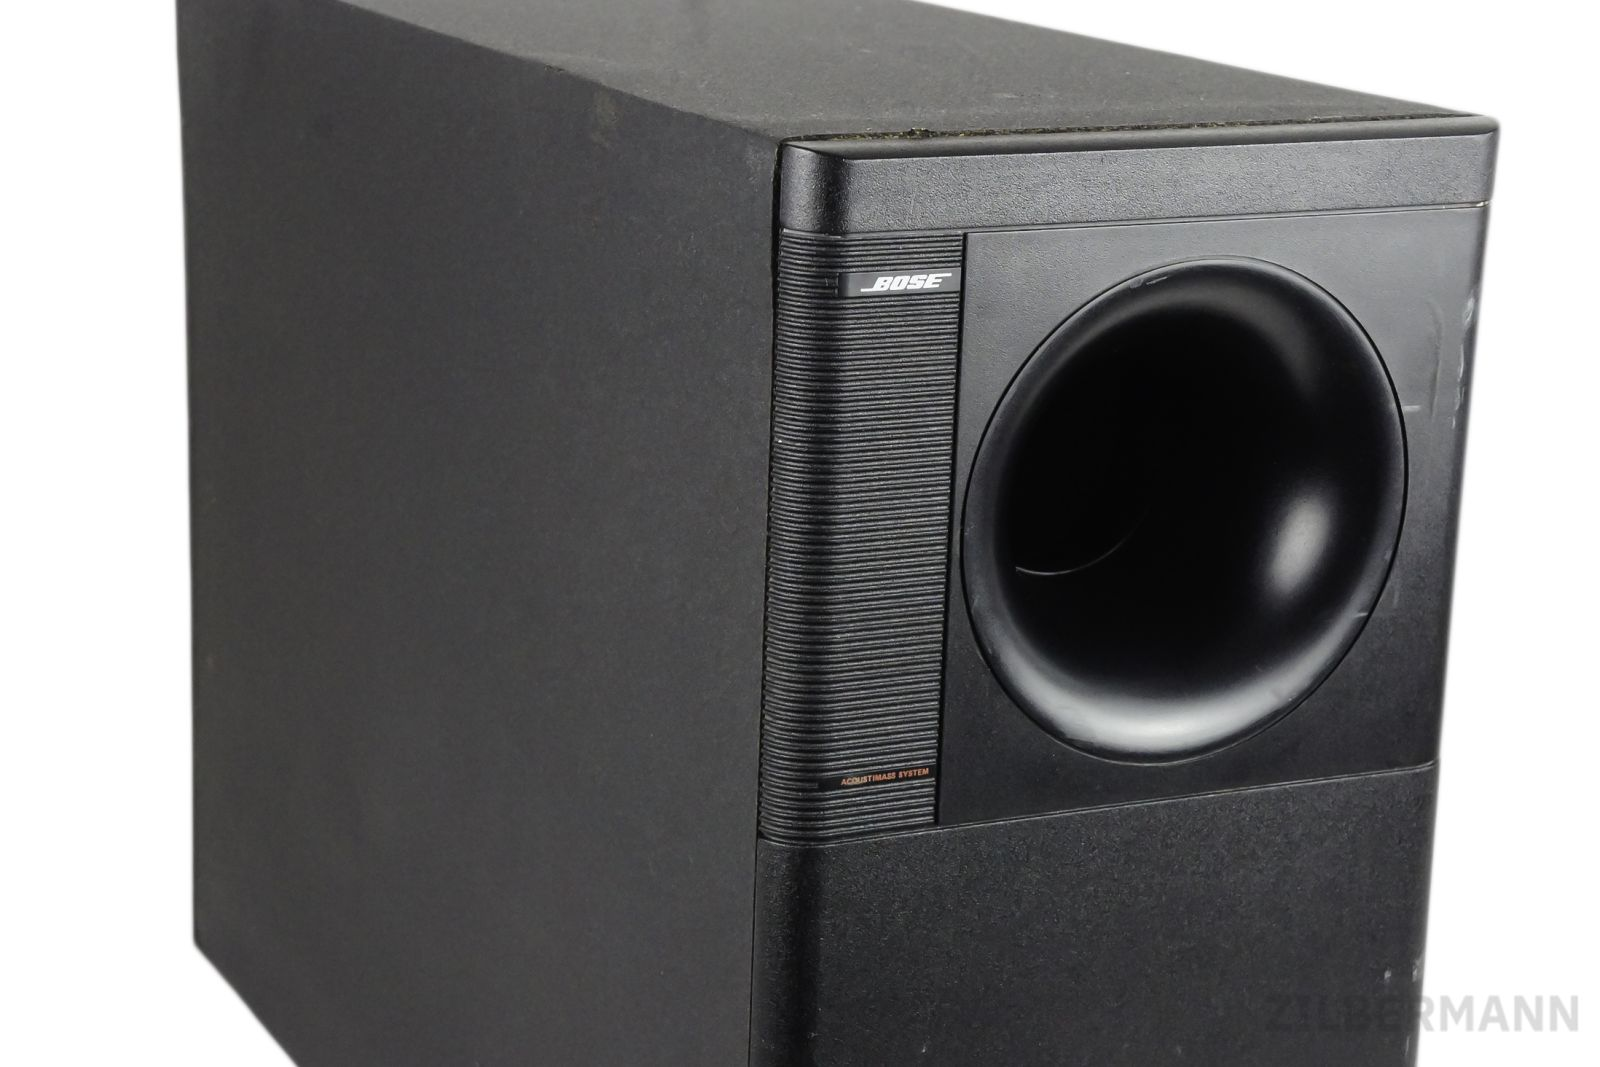 Bose_Acoustimass_5_Series_II_Subwoofer_02